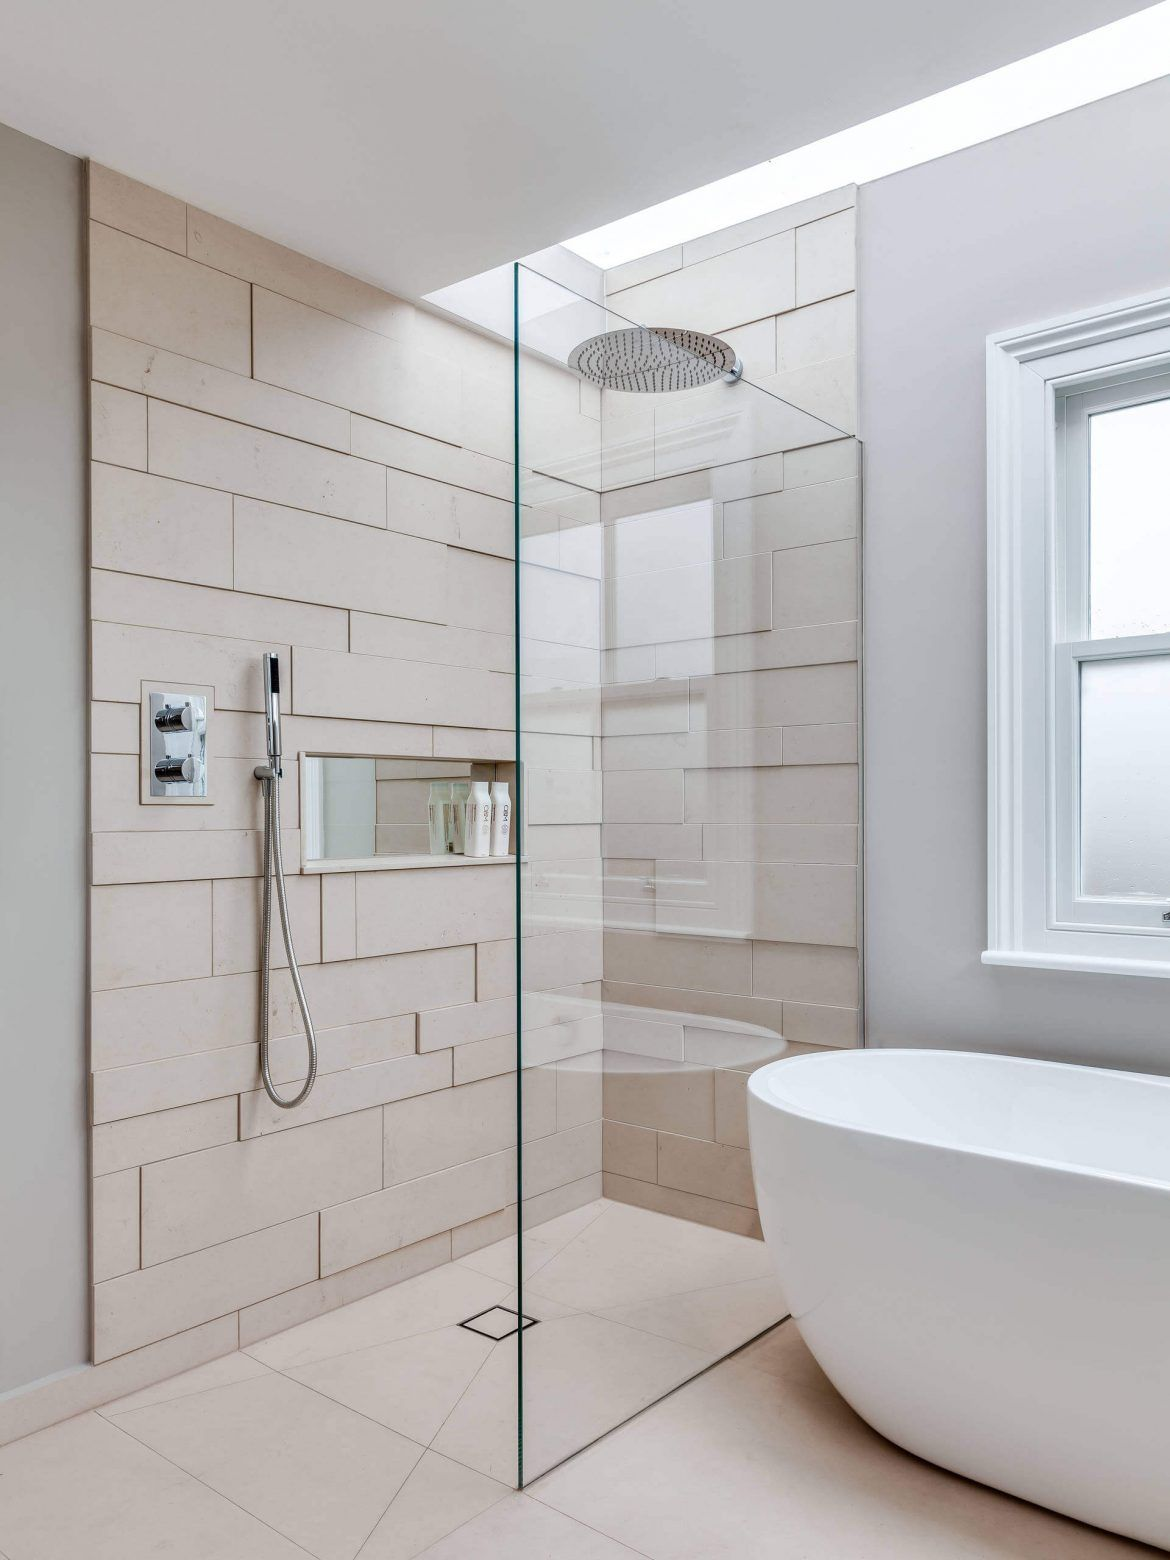 44 Modern Shower Tile Ideas And Designs 2020 Edition Minimalist Bathroom Design Minimalist Bathroom Shower Cabin